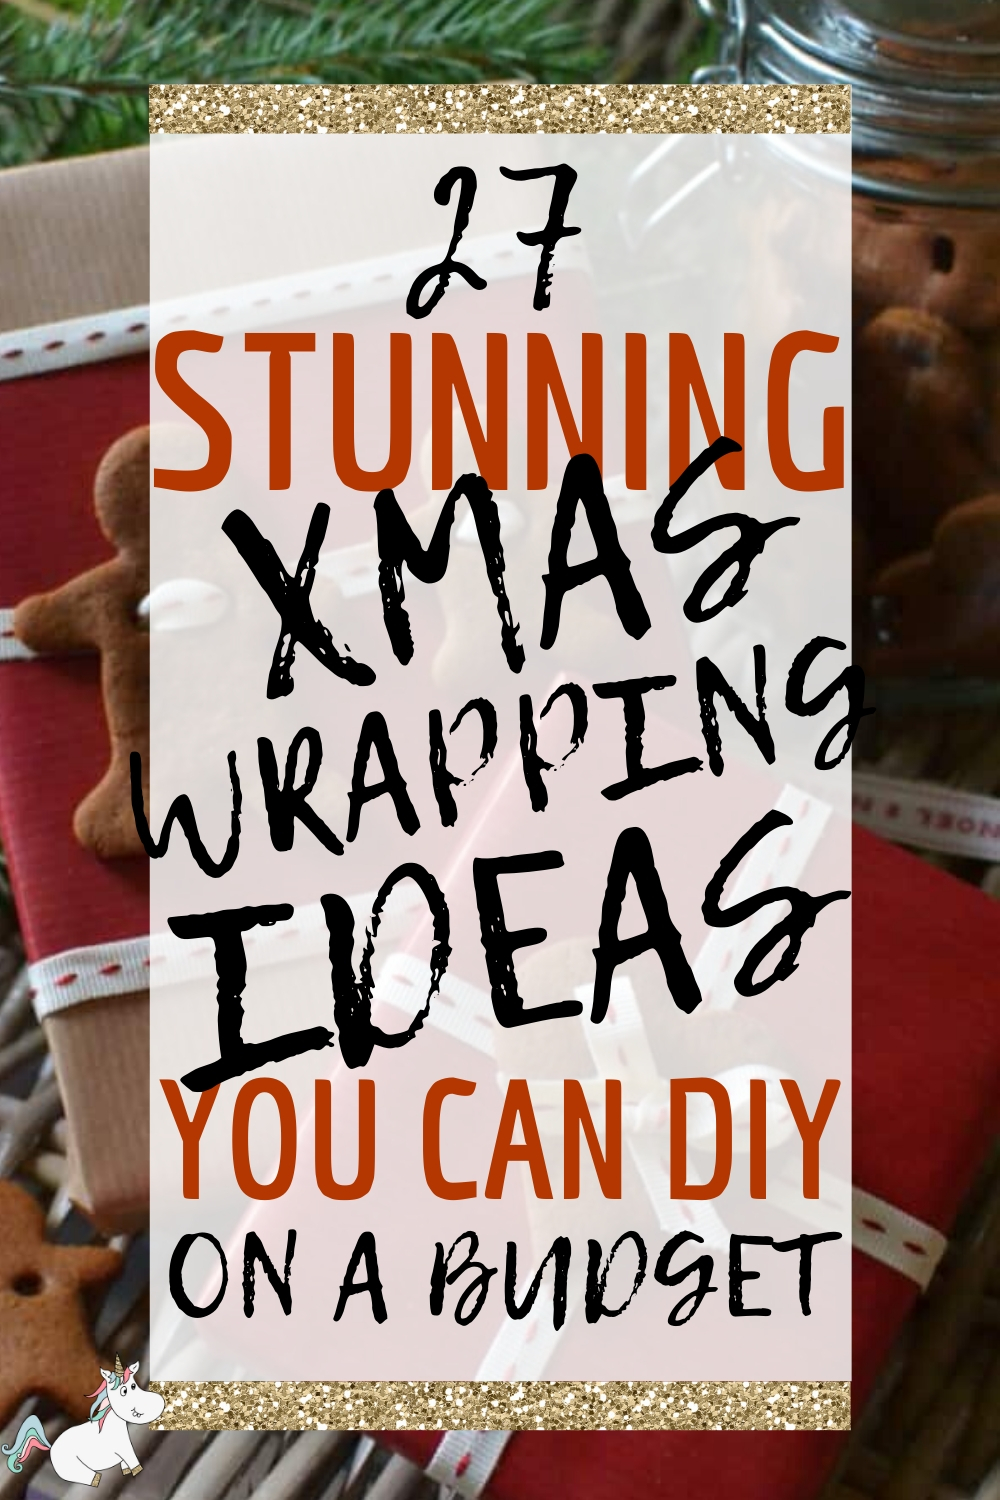 27 Stunning Christmas Gift Wrapping Ideas You Can DIY on a Budget. Are you looking for some beautiful festive wrap ideas to make your gifts even more special? Then look no further than these Christmas gift wrapping ideas that will look stunning under any tree this year... click the pin to check them out #themummyfront